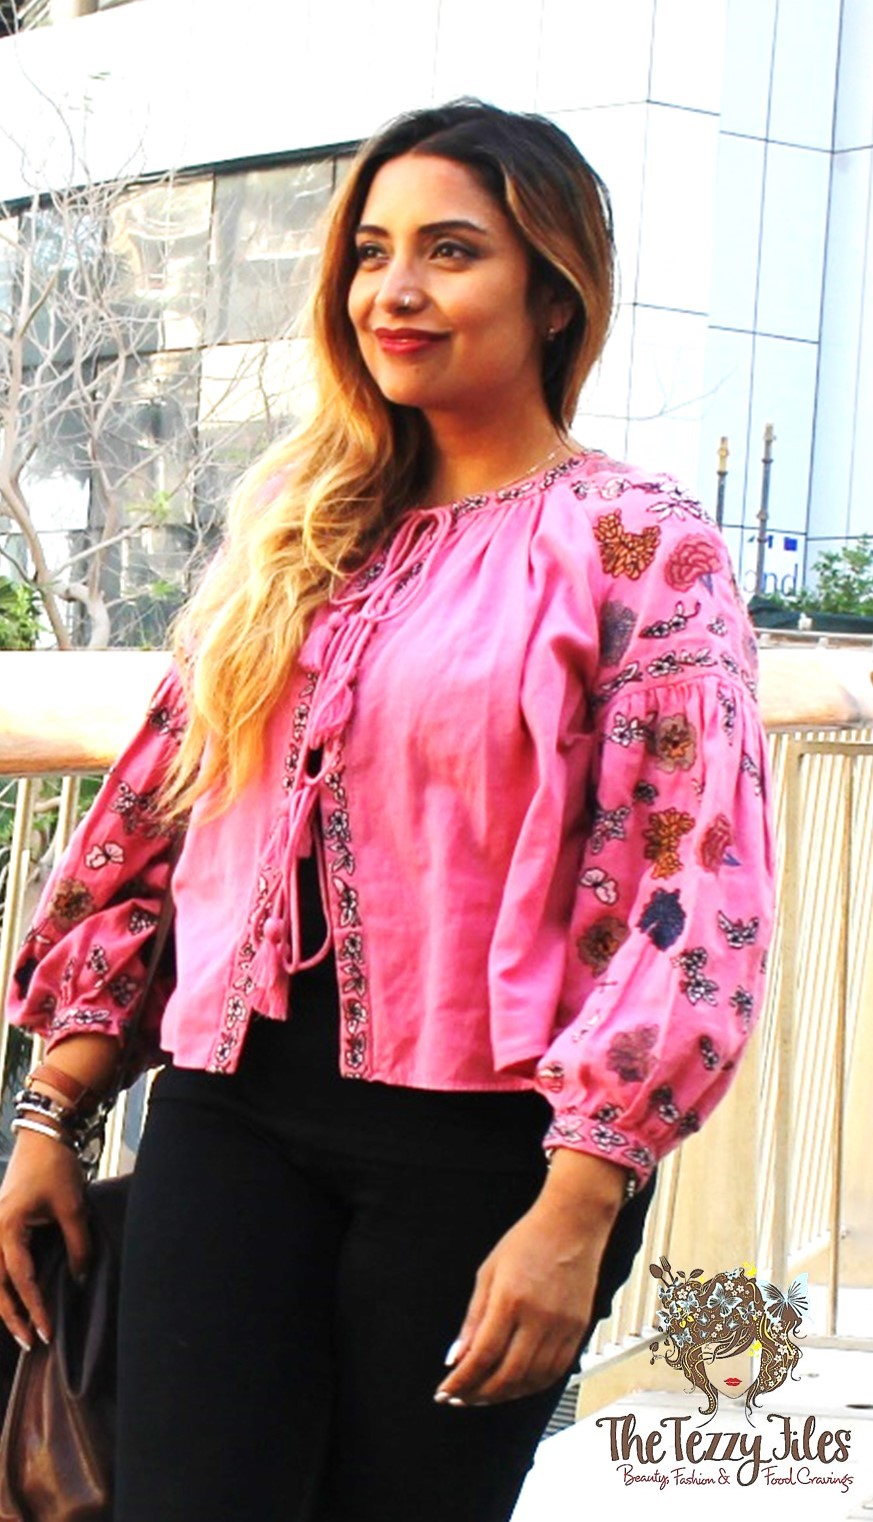 Zara Pink Jacket Embroidery Boho big sleeves bohemian fashion blog Dubai style blogger UAE lifestyle tie up jacket look of the day fashionista (2)